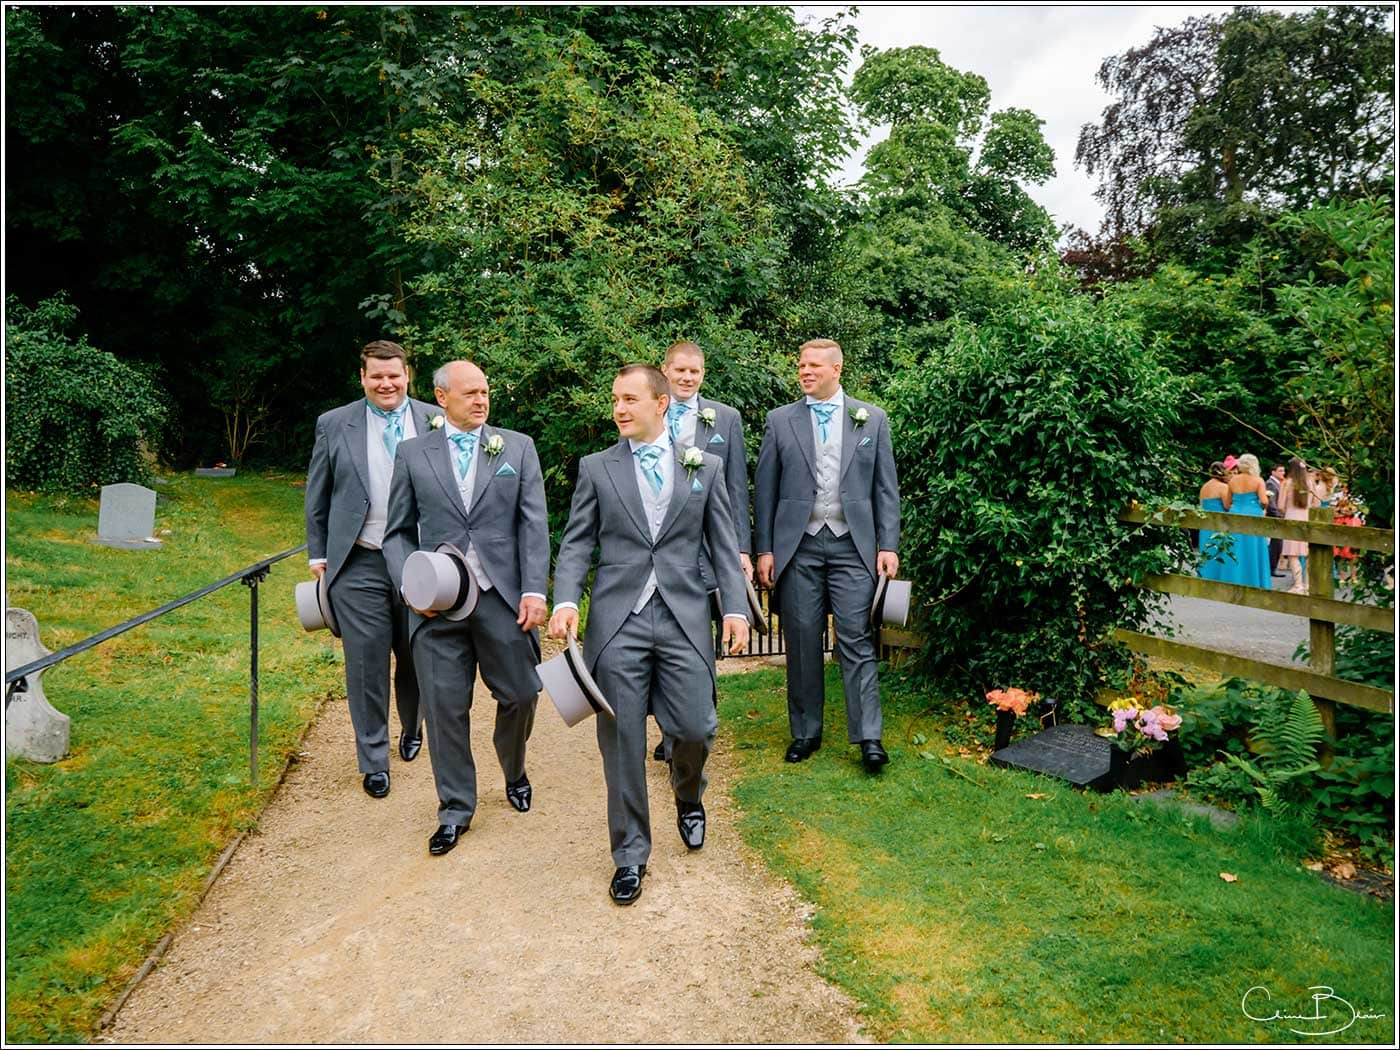 Men arriving at church-by Hampton manor wedding photographer Clive Blair Photography